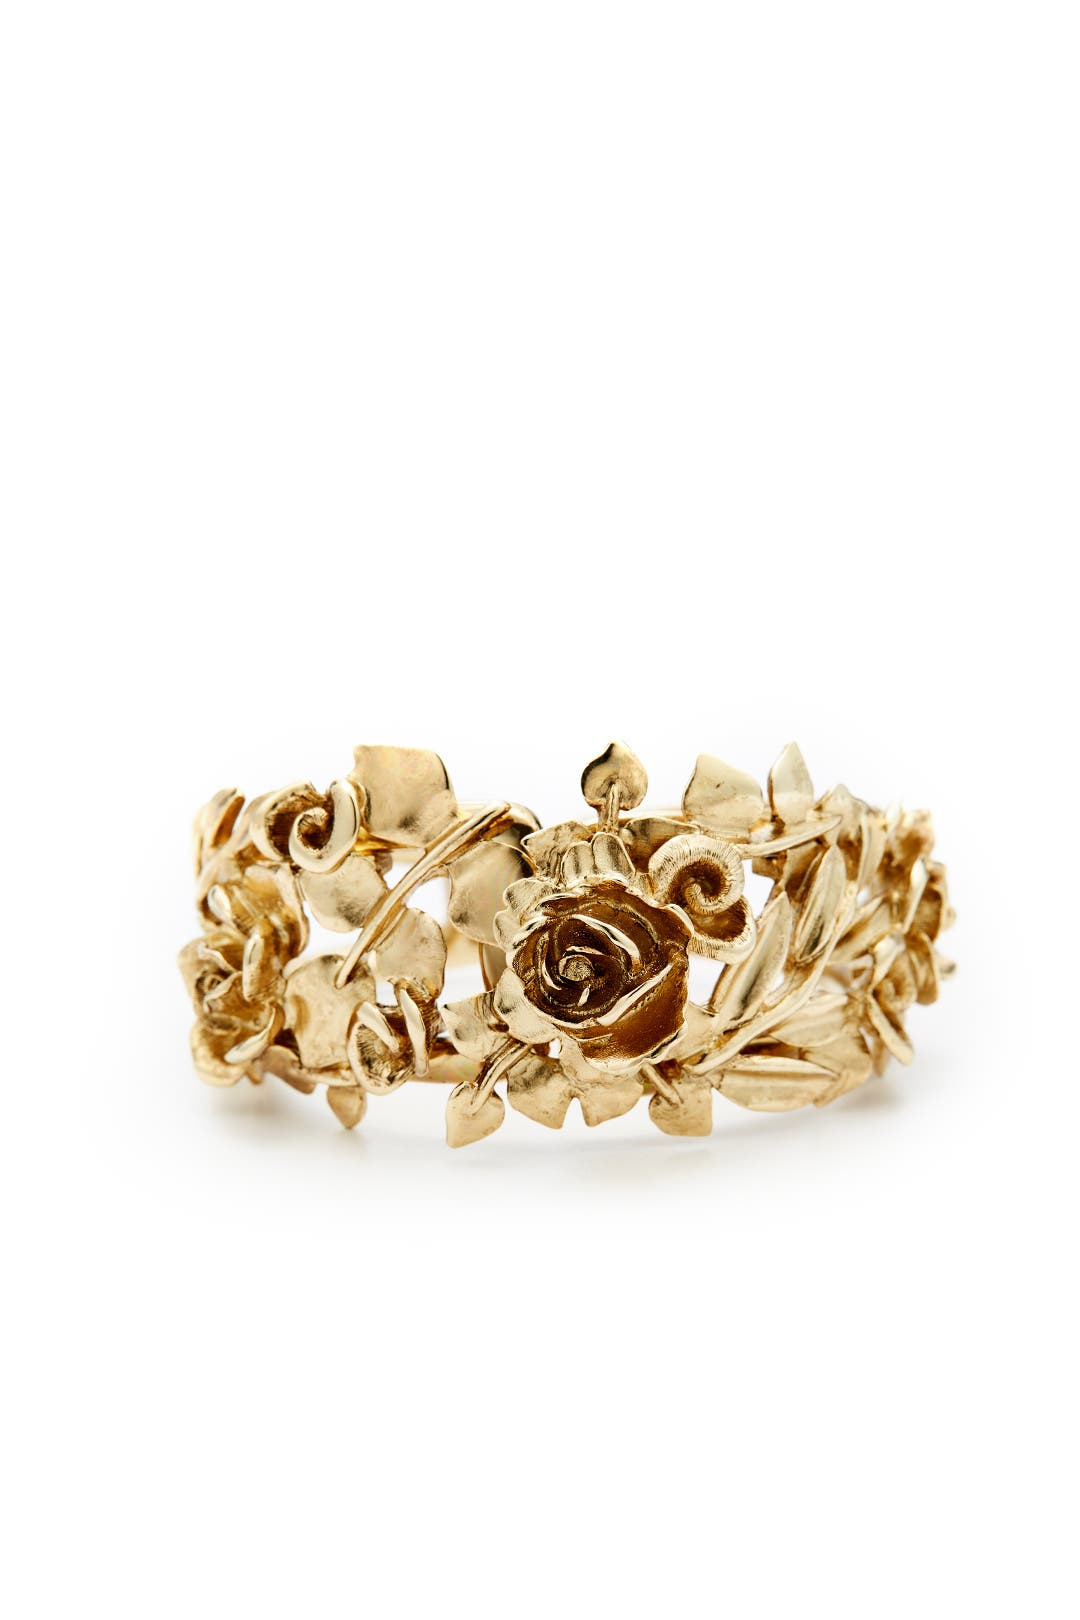 Rose And Leaf Gold Vine Bracelet By Oscar De La Renta For